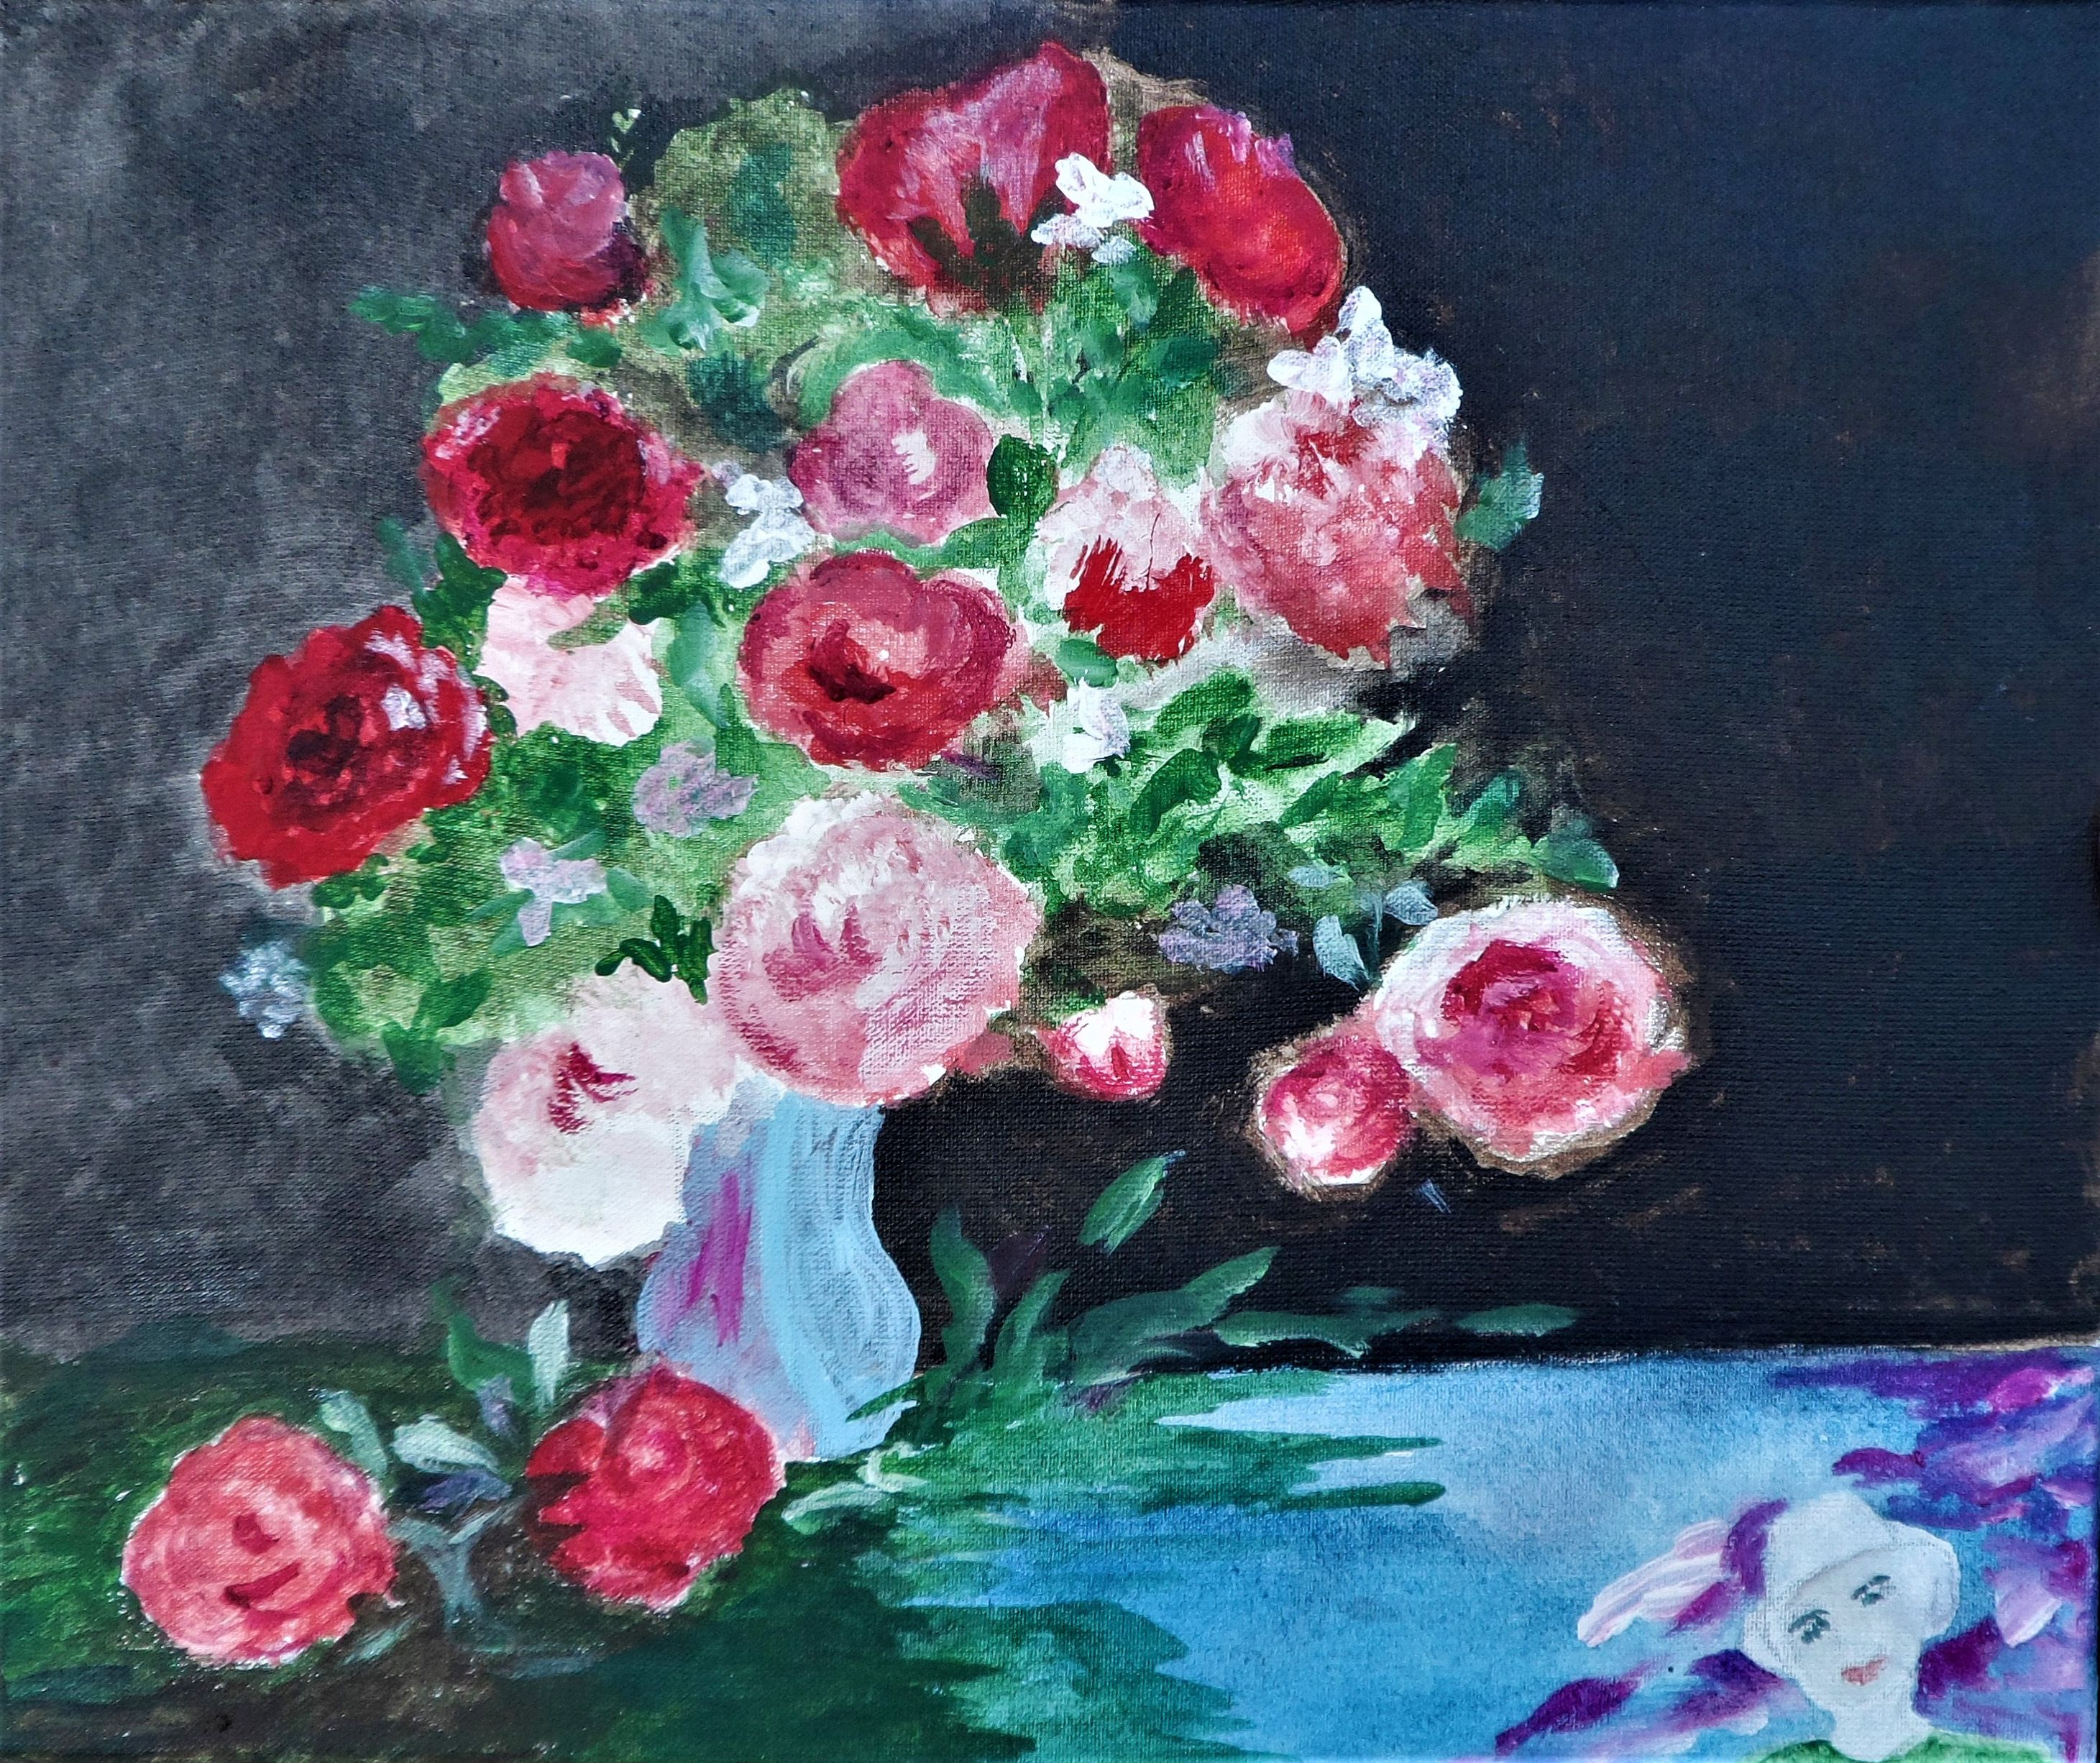 Days of Wine and Roses by Mrs D Parker from the Self Portrait open art exhibition at Harbour House, autumn 2017